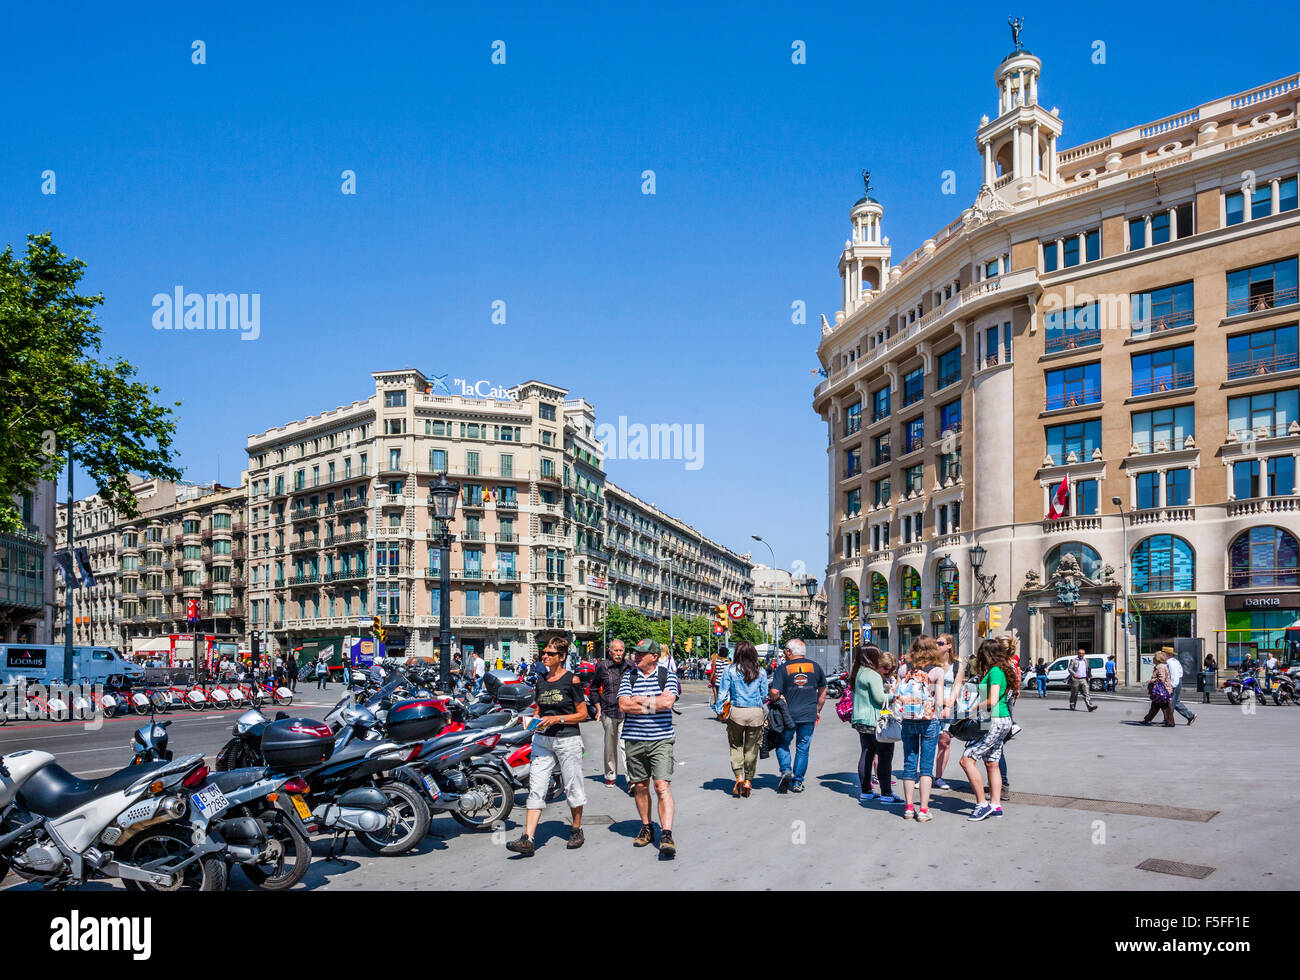 L'Espagne, de la catatonie, Barcelone, Plaça de Catalunya, grande place dans le centre-ville Photo Stock